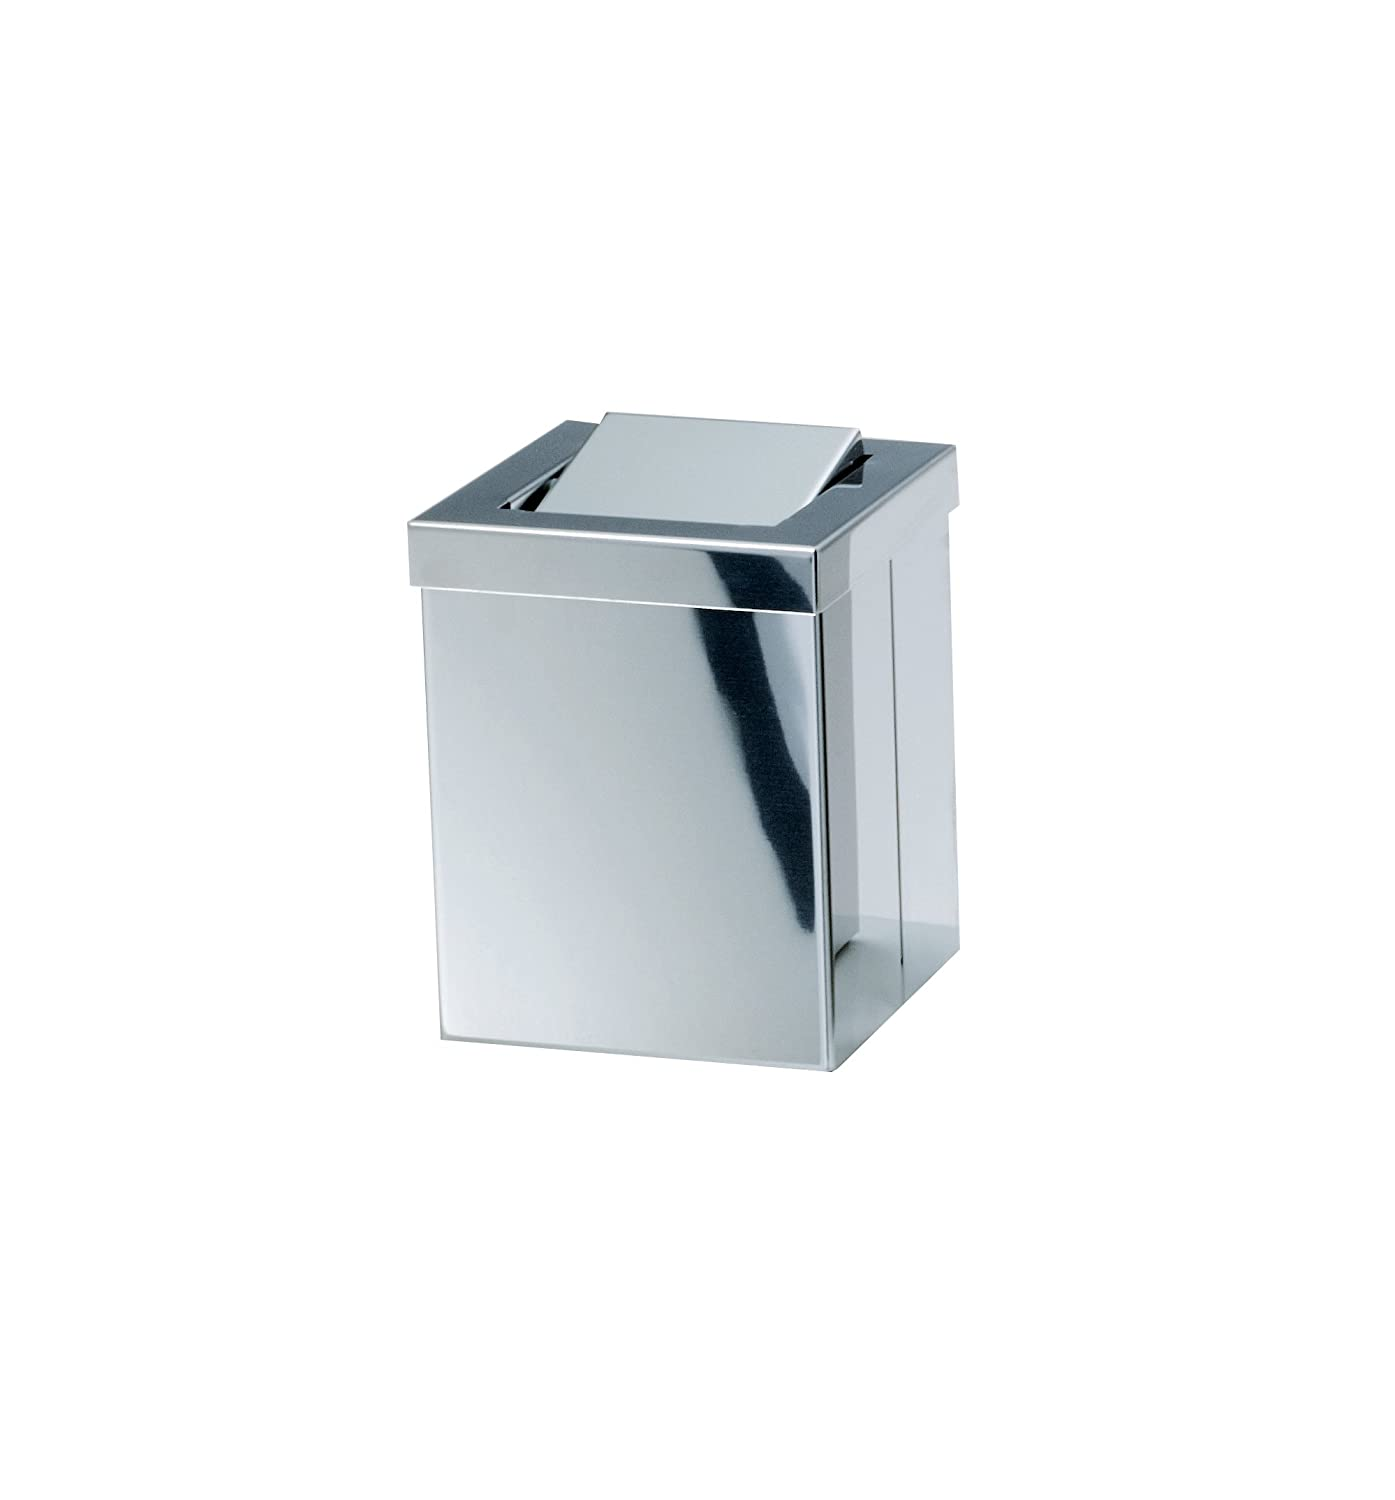 Amazon.com: Walther Square Small Stainless Steel Wastebaske Trash ...